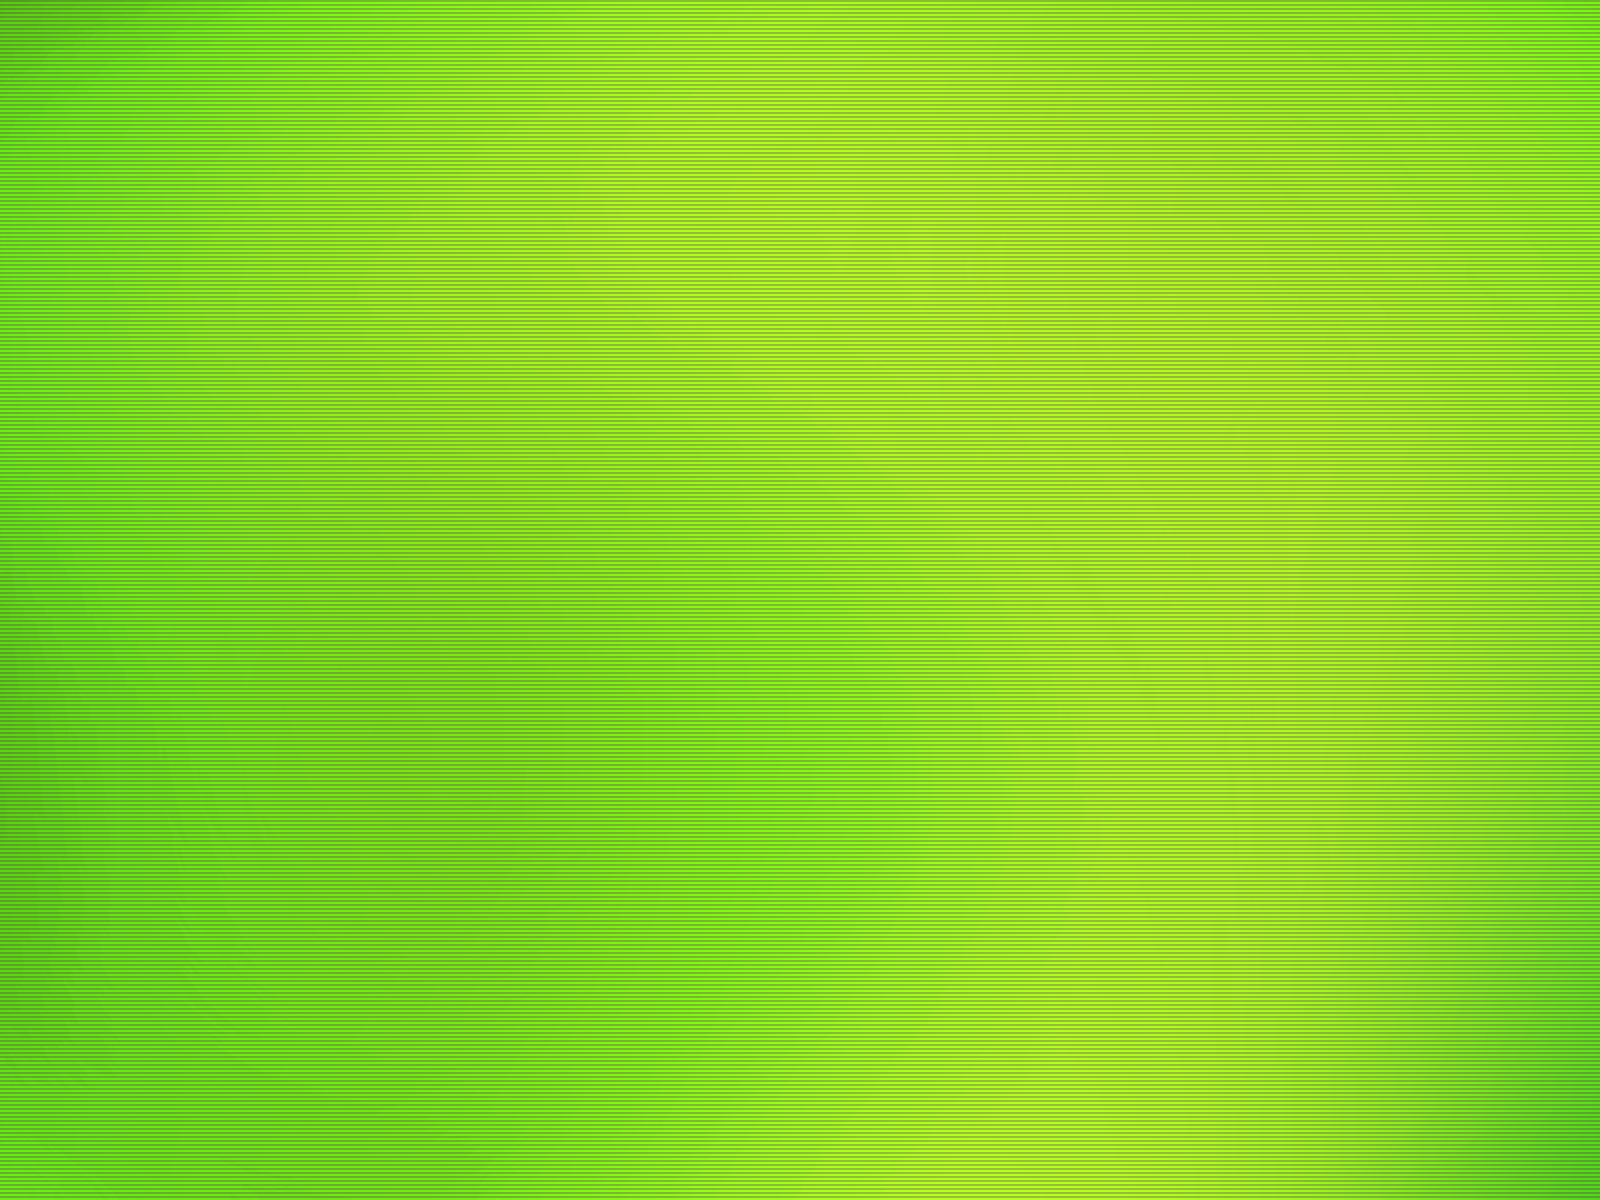 plain light green wallpaper 24341 1600x1200 px